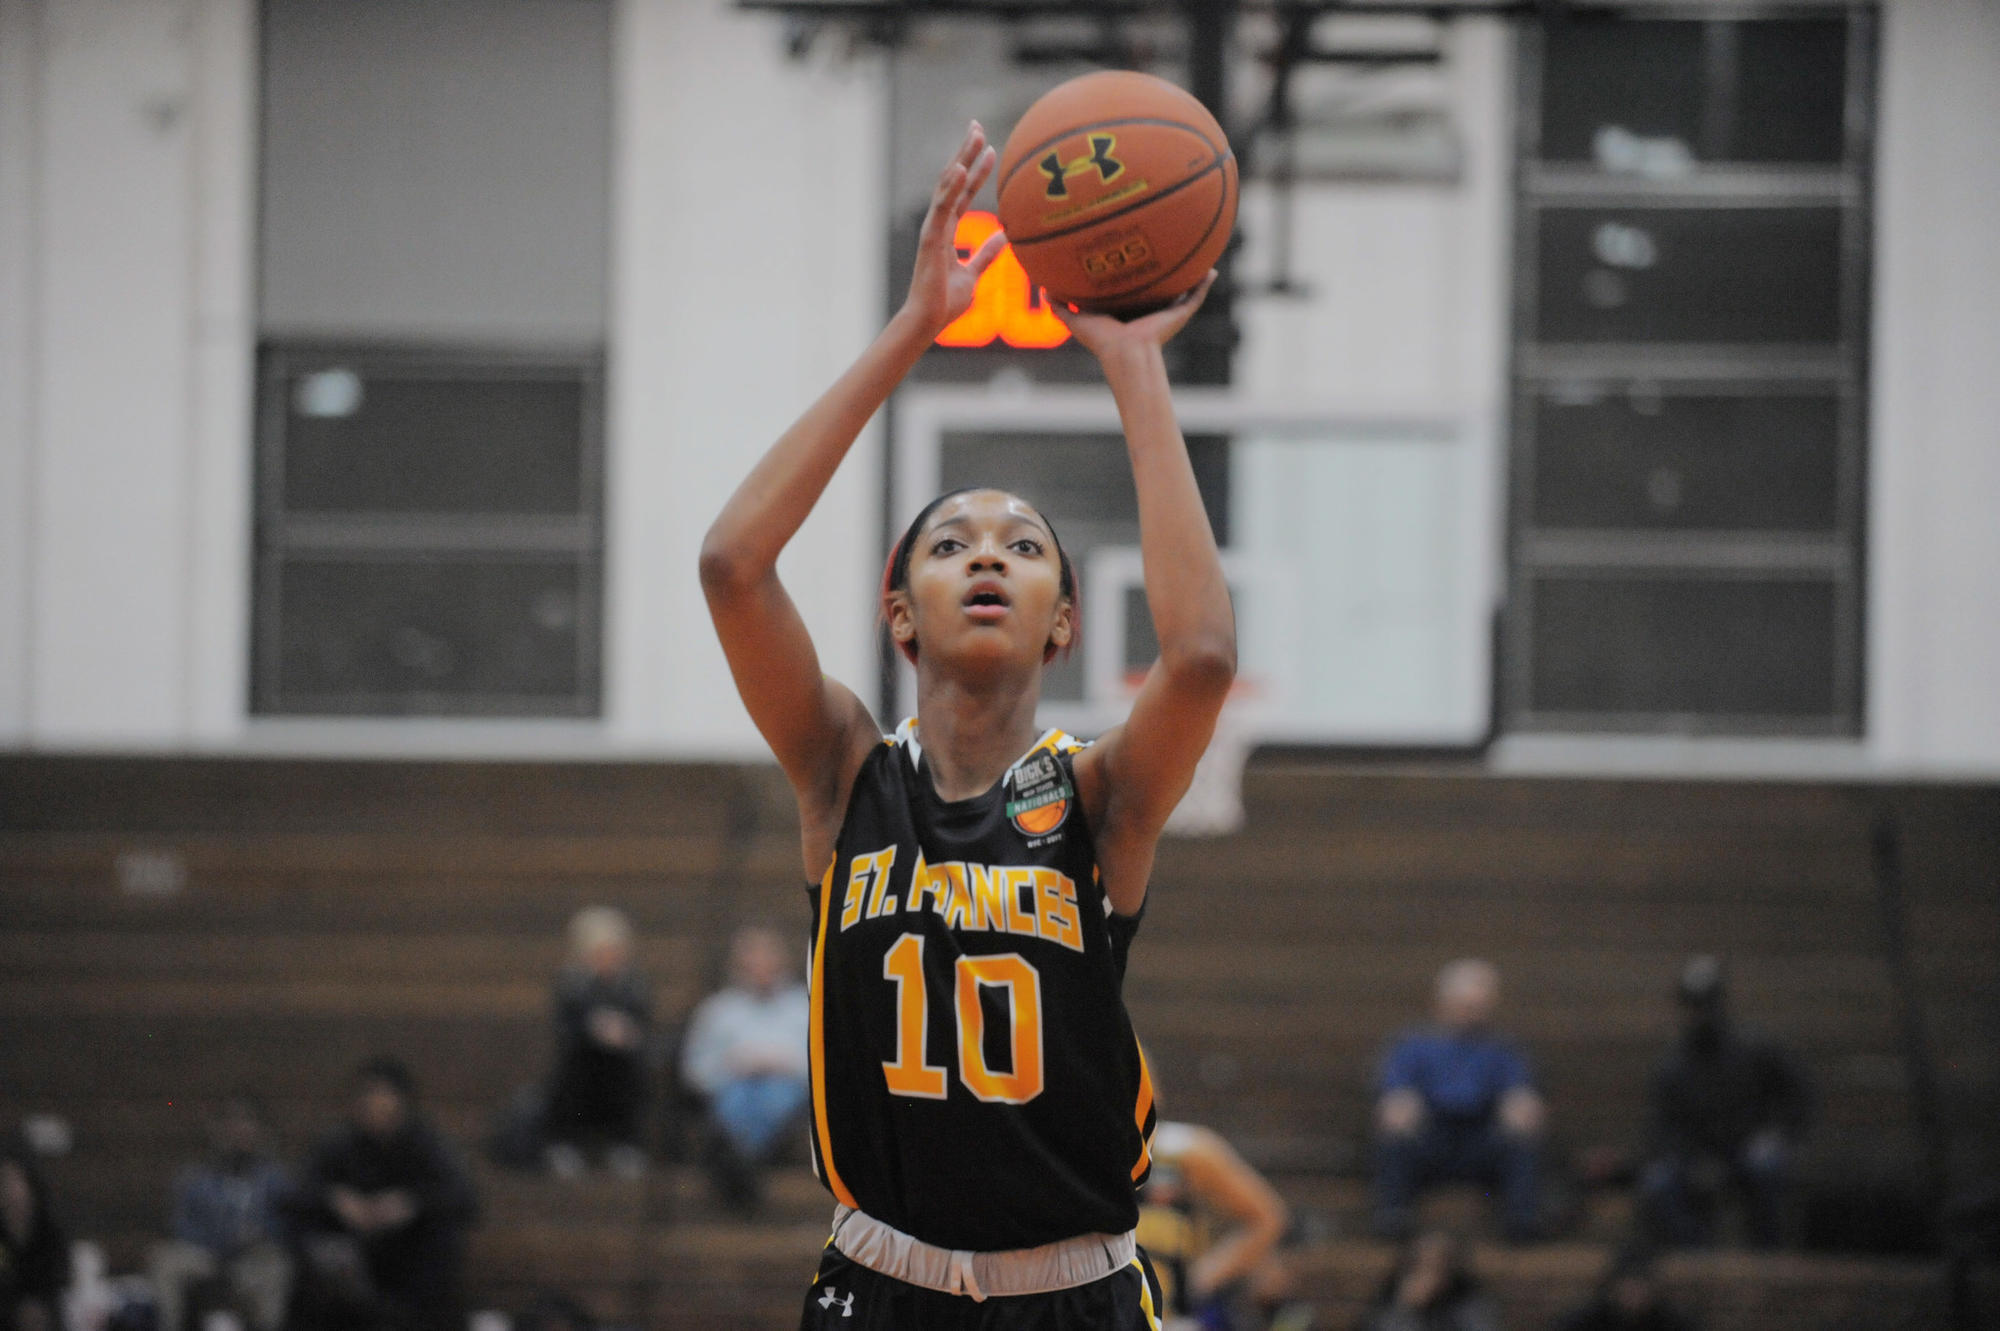 St. Frances' Angel Reese among finalists for USA Under-17 World Cup basketball team